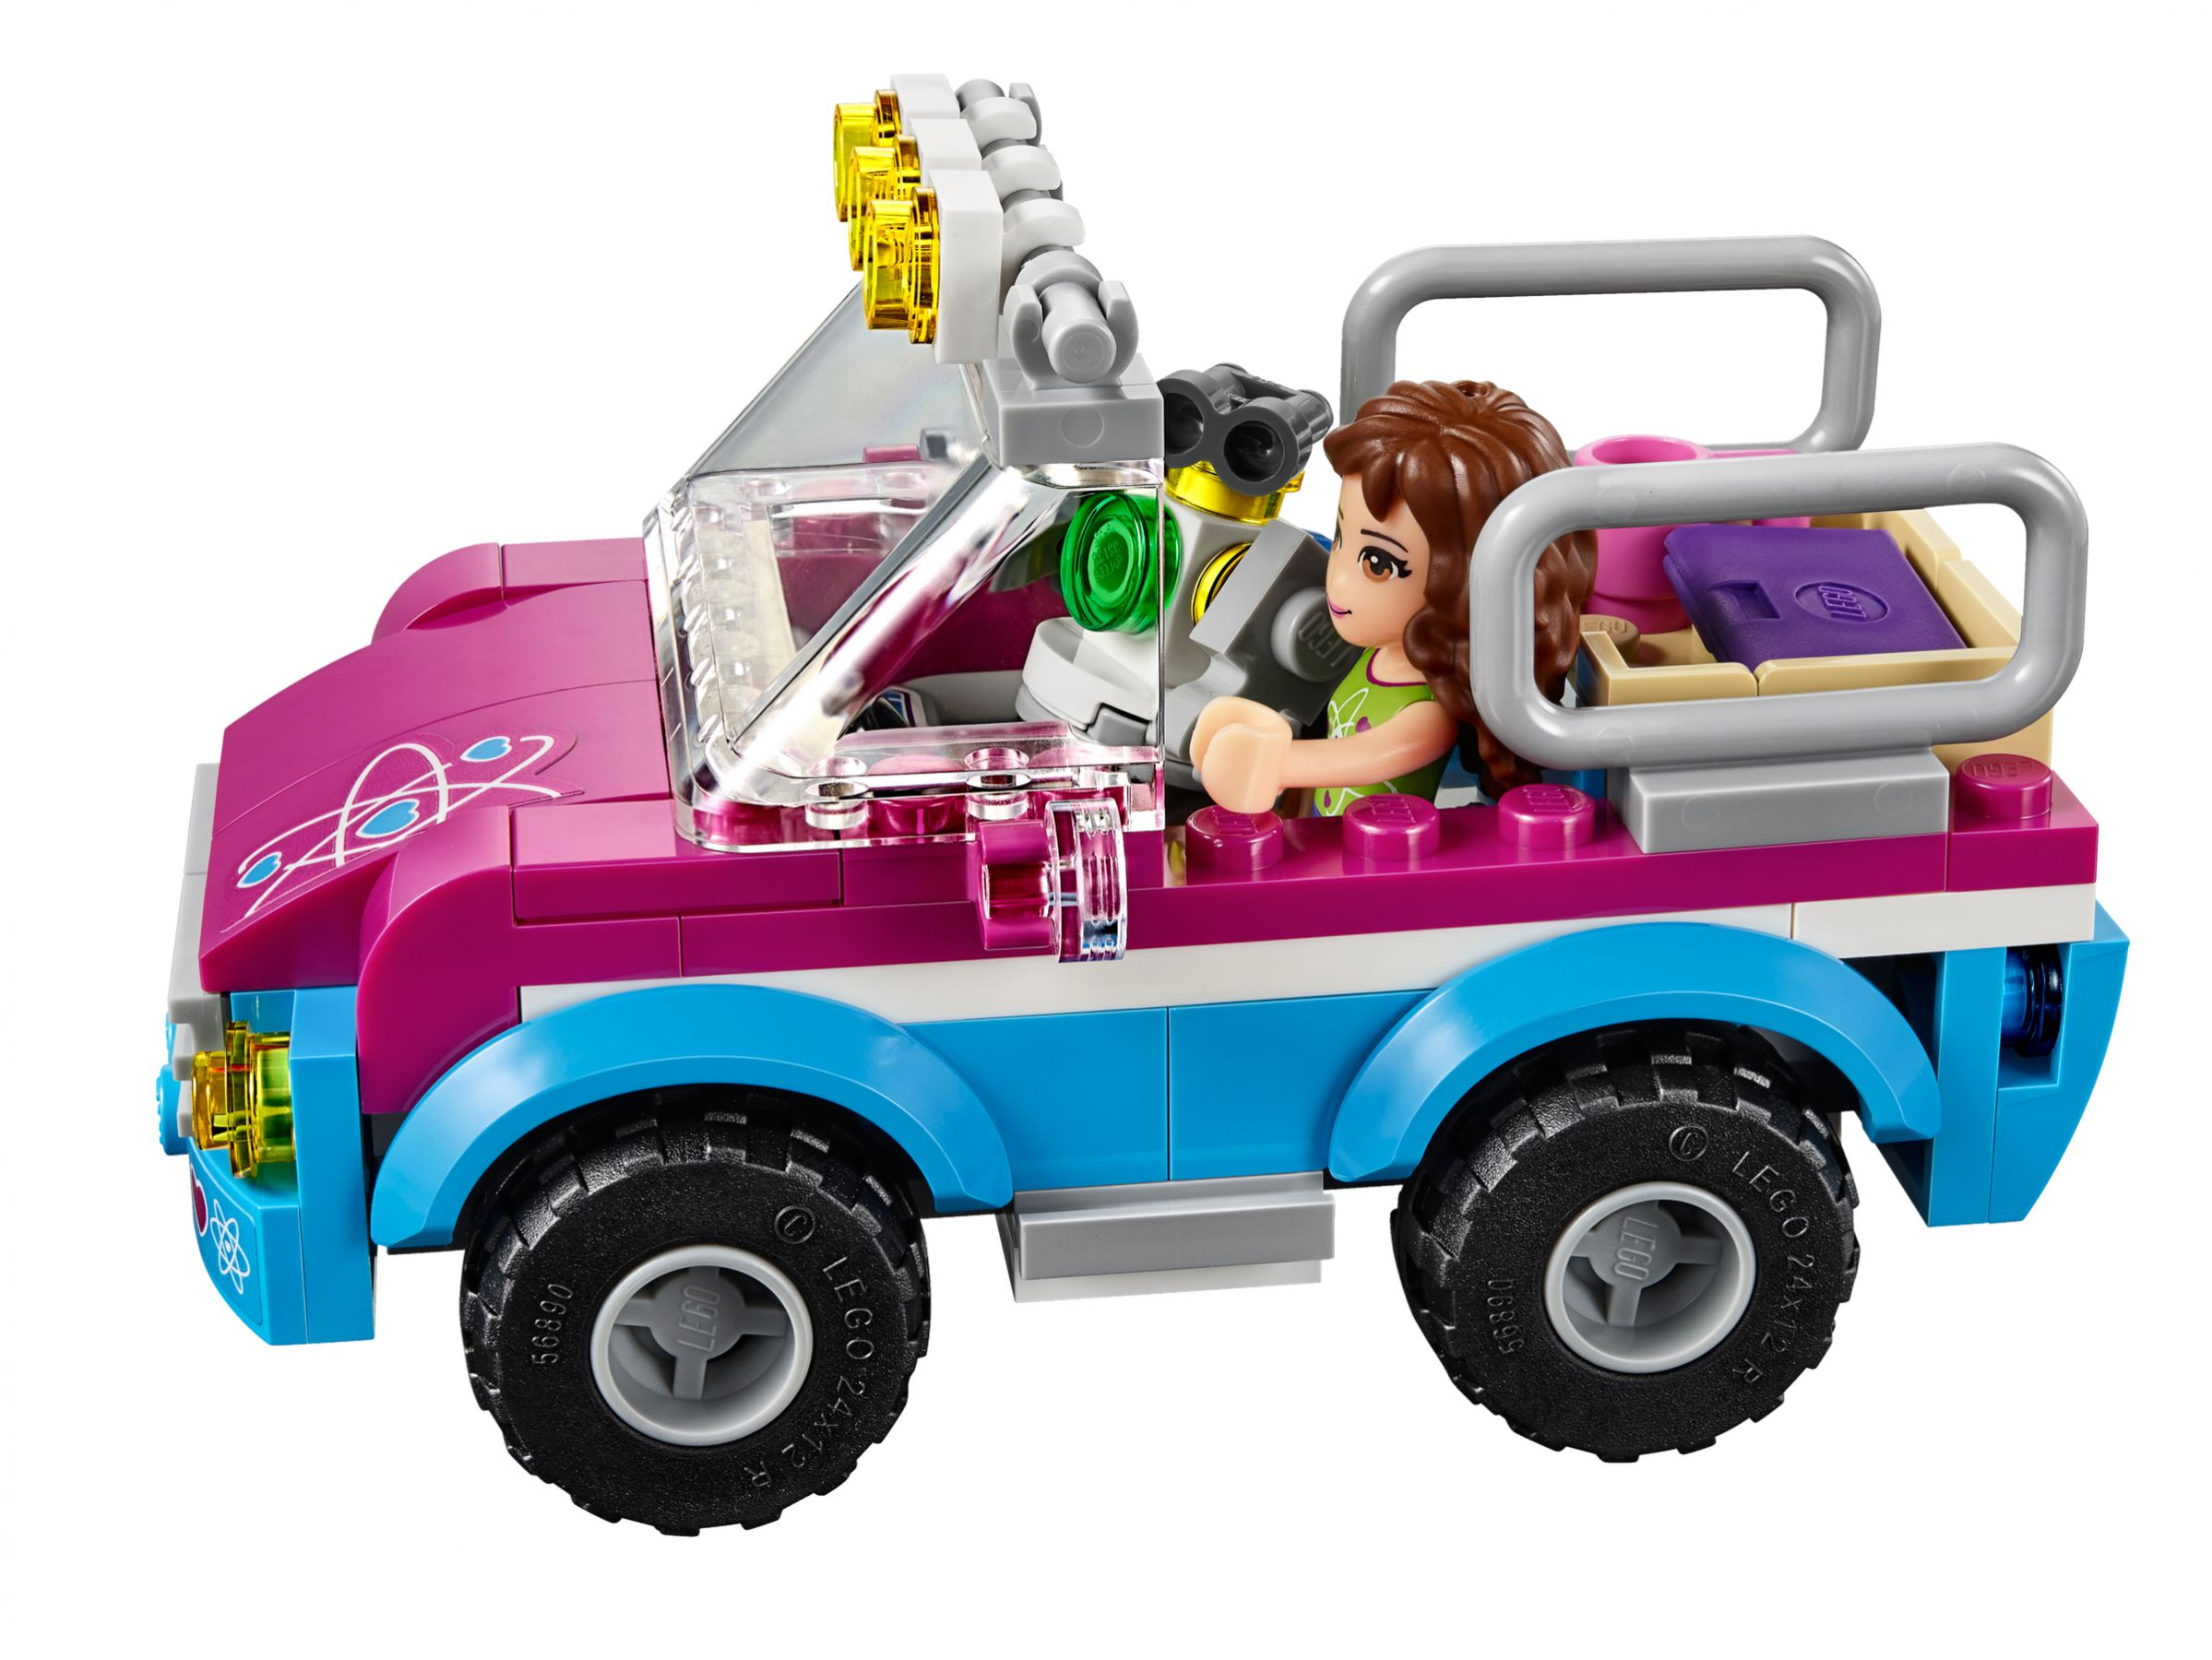 LEGO Friends 41116 Olivias Expeditionsauto LEGO_41116_alt3.jpg